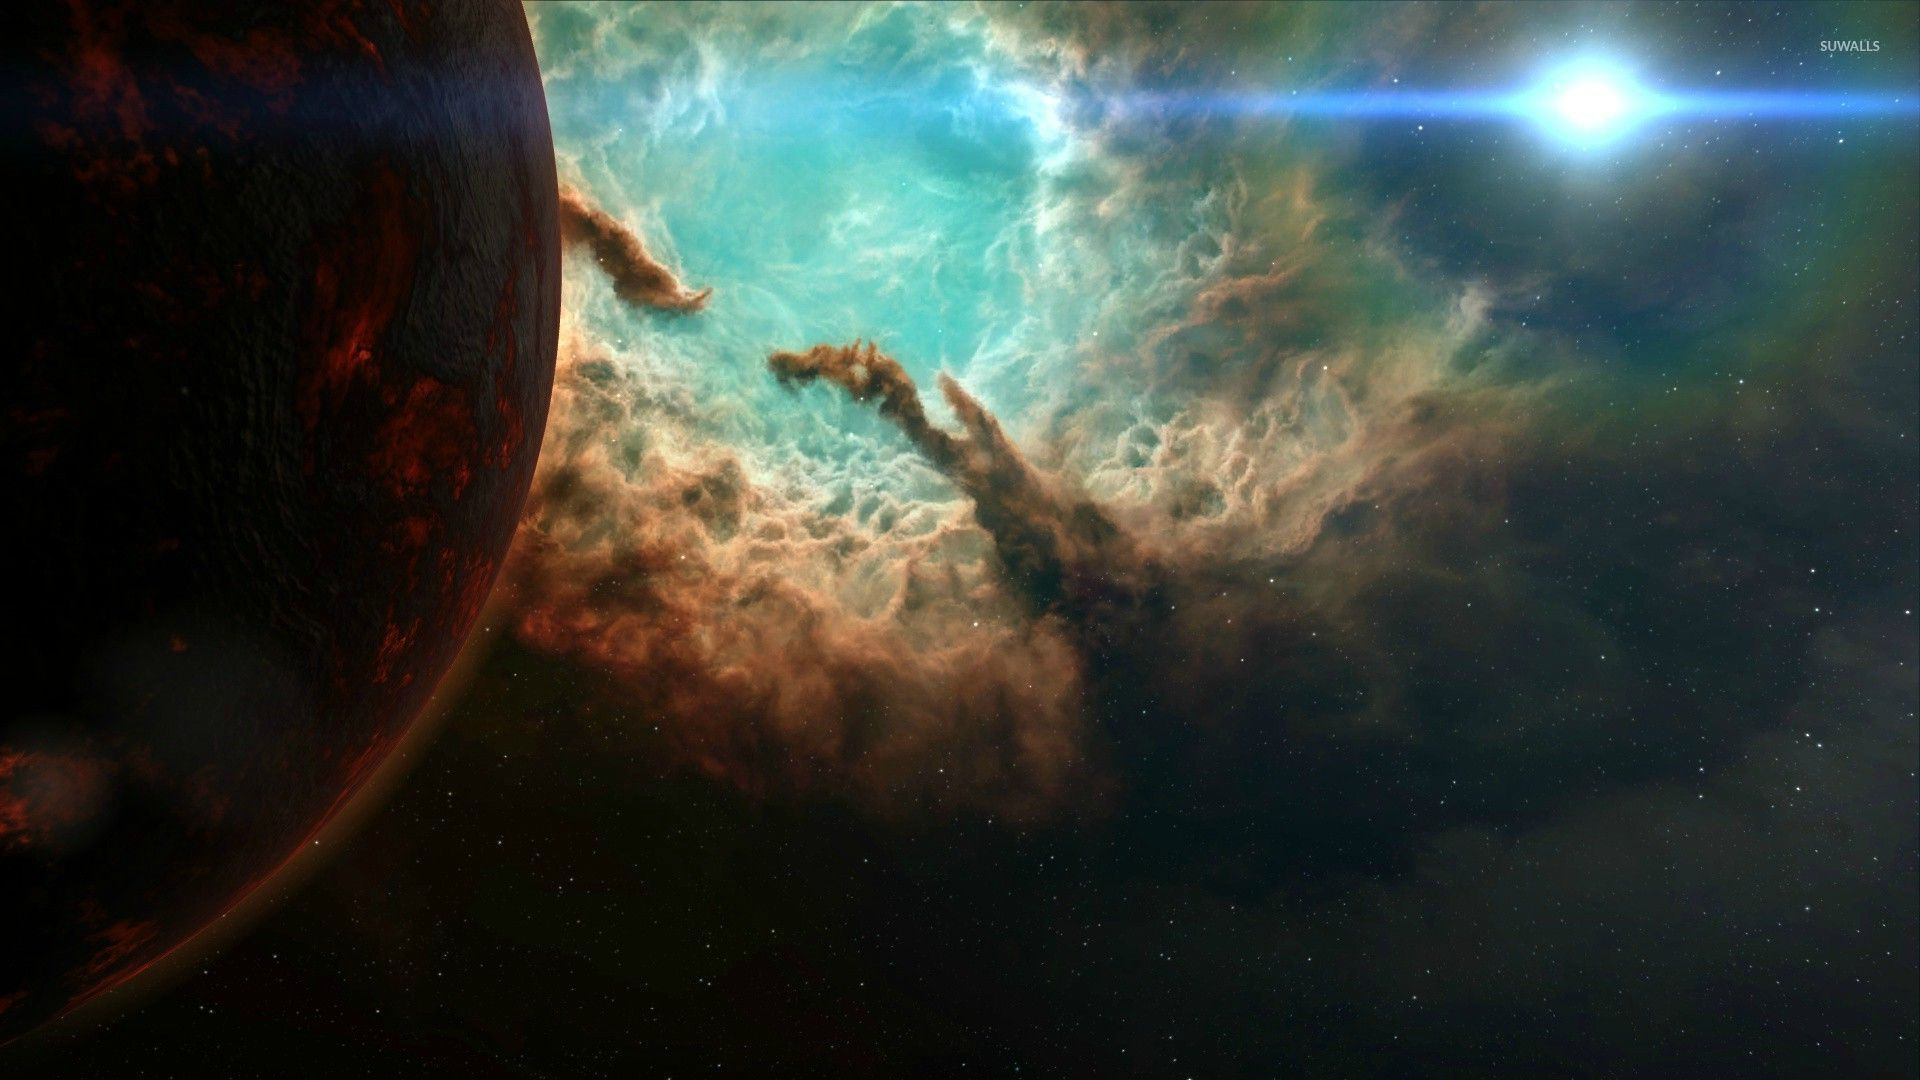 Red planet by the amazing nebula wallpaper - Space ...